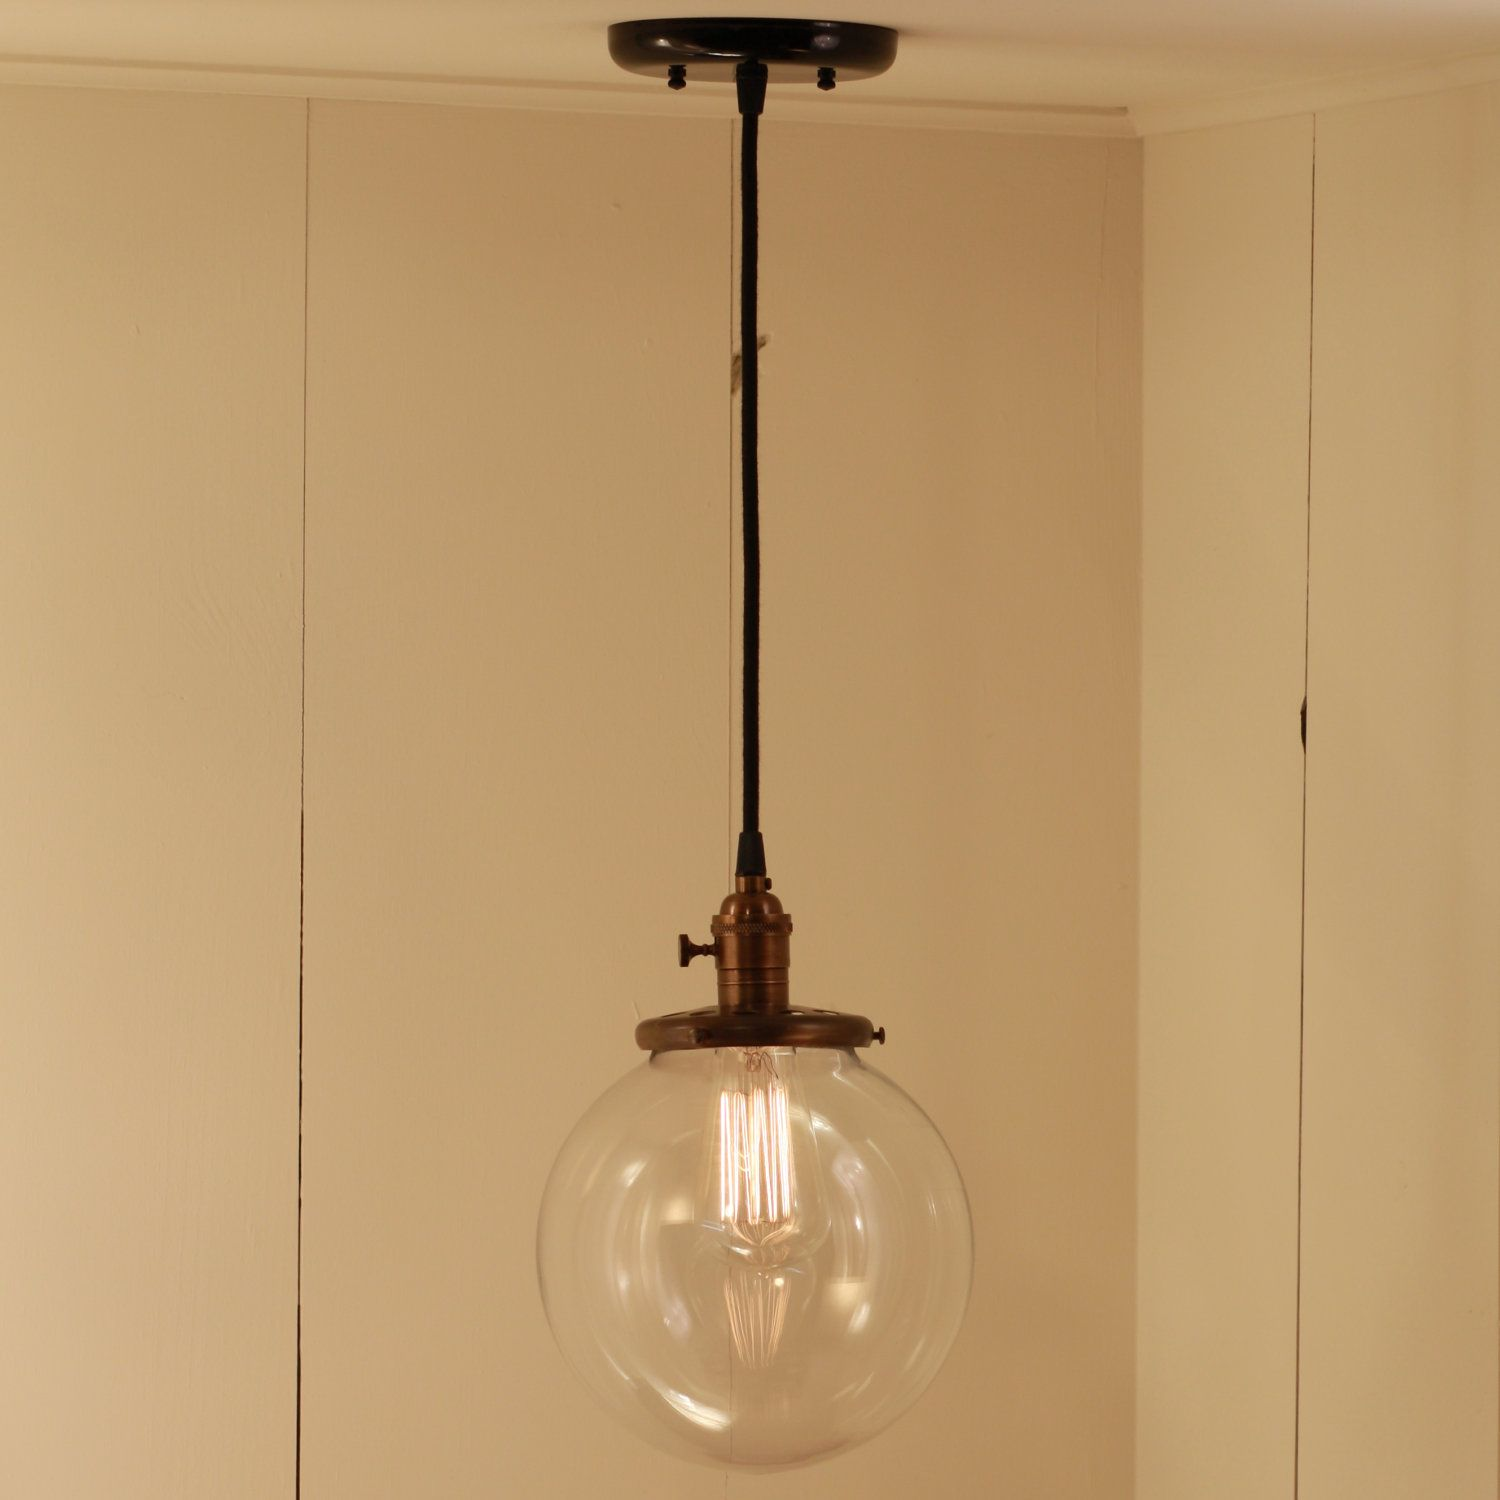 "Morinski Hanging Pendant Light Fixture With 8"" Glass Globe"